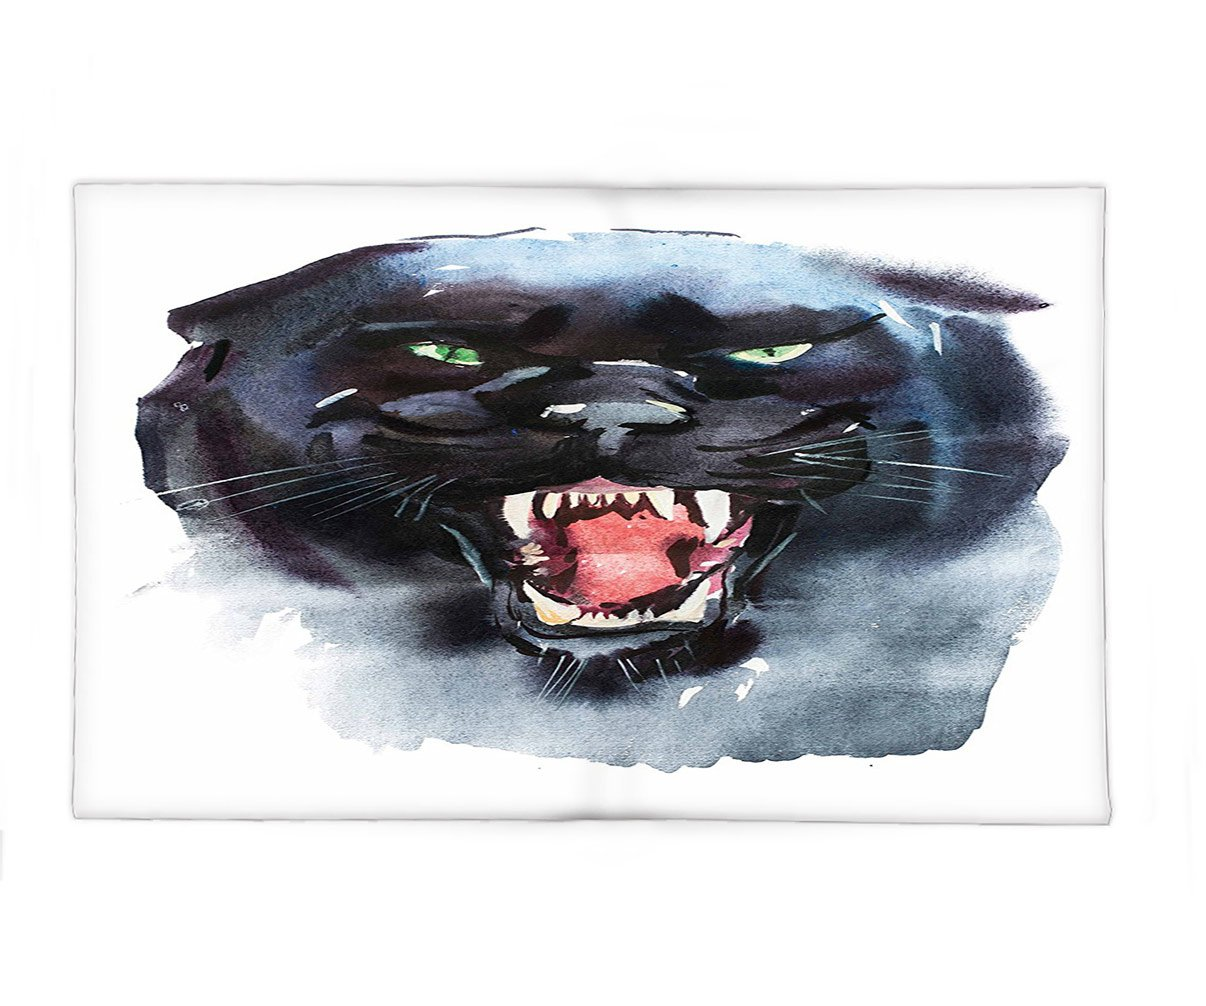 Interestlee Fleece Throw Blanket Animal Wildlife Angry Looking Panther Watercolor Portrait Brushstroke Artful Print Black Light Blue